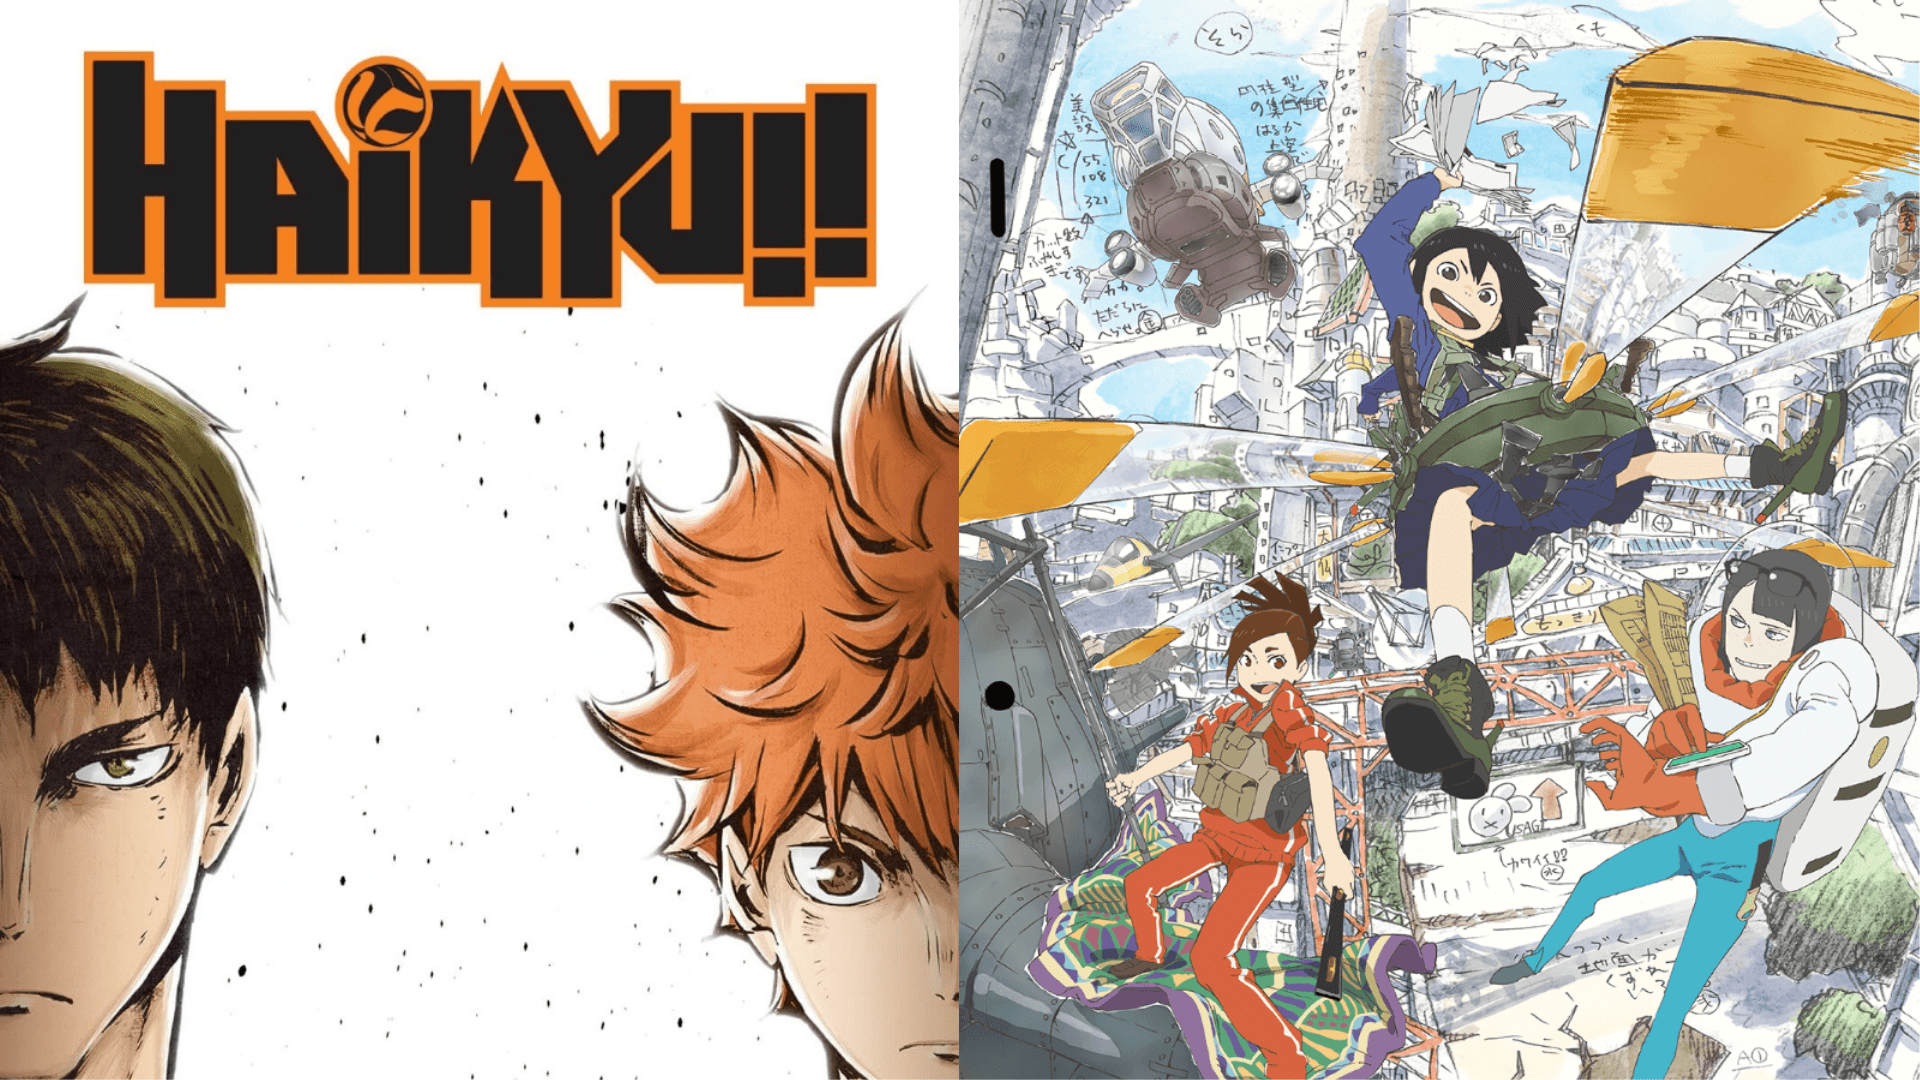 Haikyuu Season 4 Episode 21 Release Date and How to Watch Online